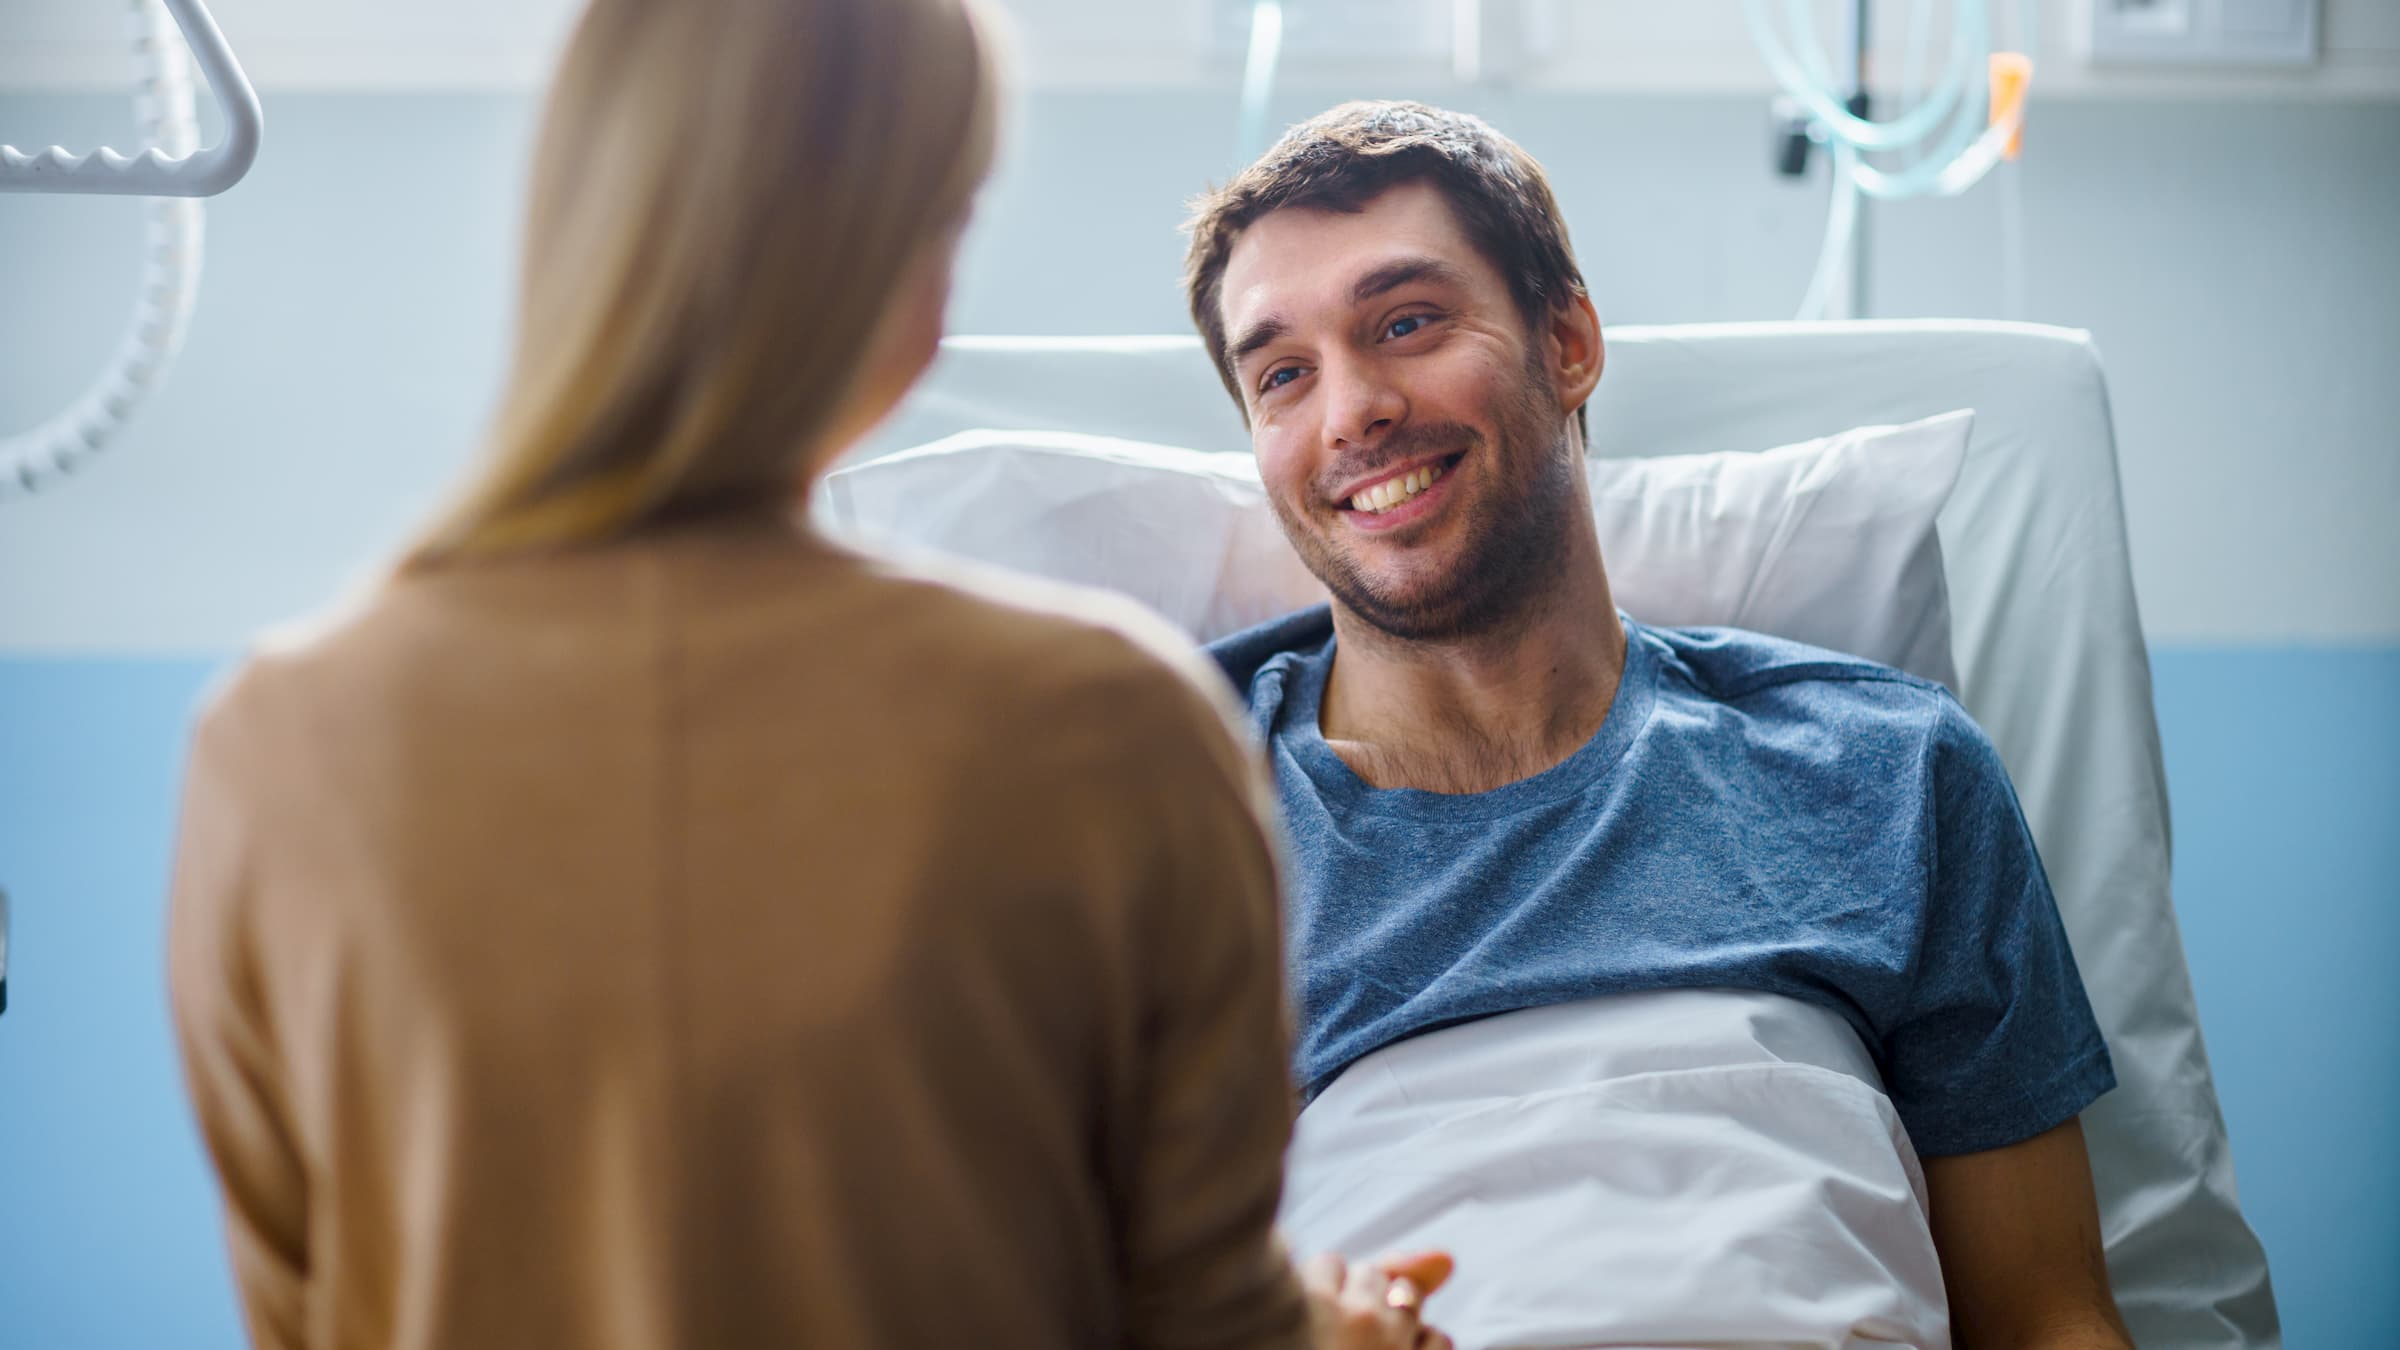 In the Hospital, Man Recovering from Illness Lying in Bed, Loving Wife Visits Him. He is Smiling and Looking at Wife.